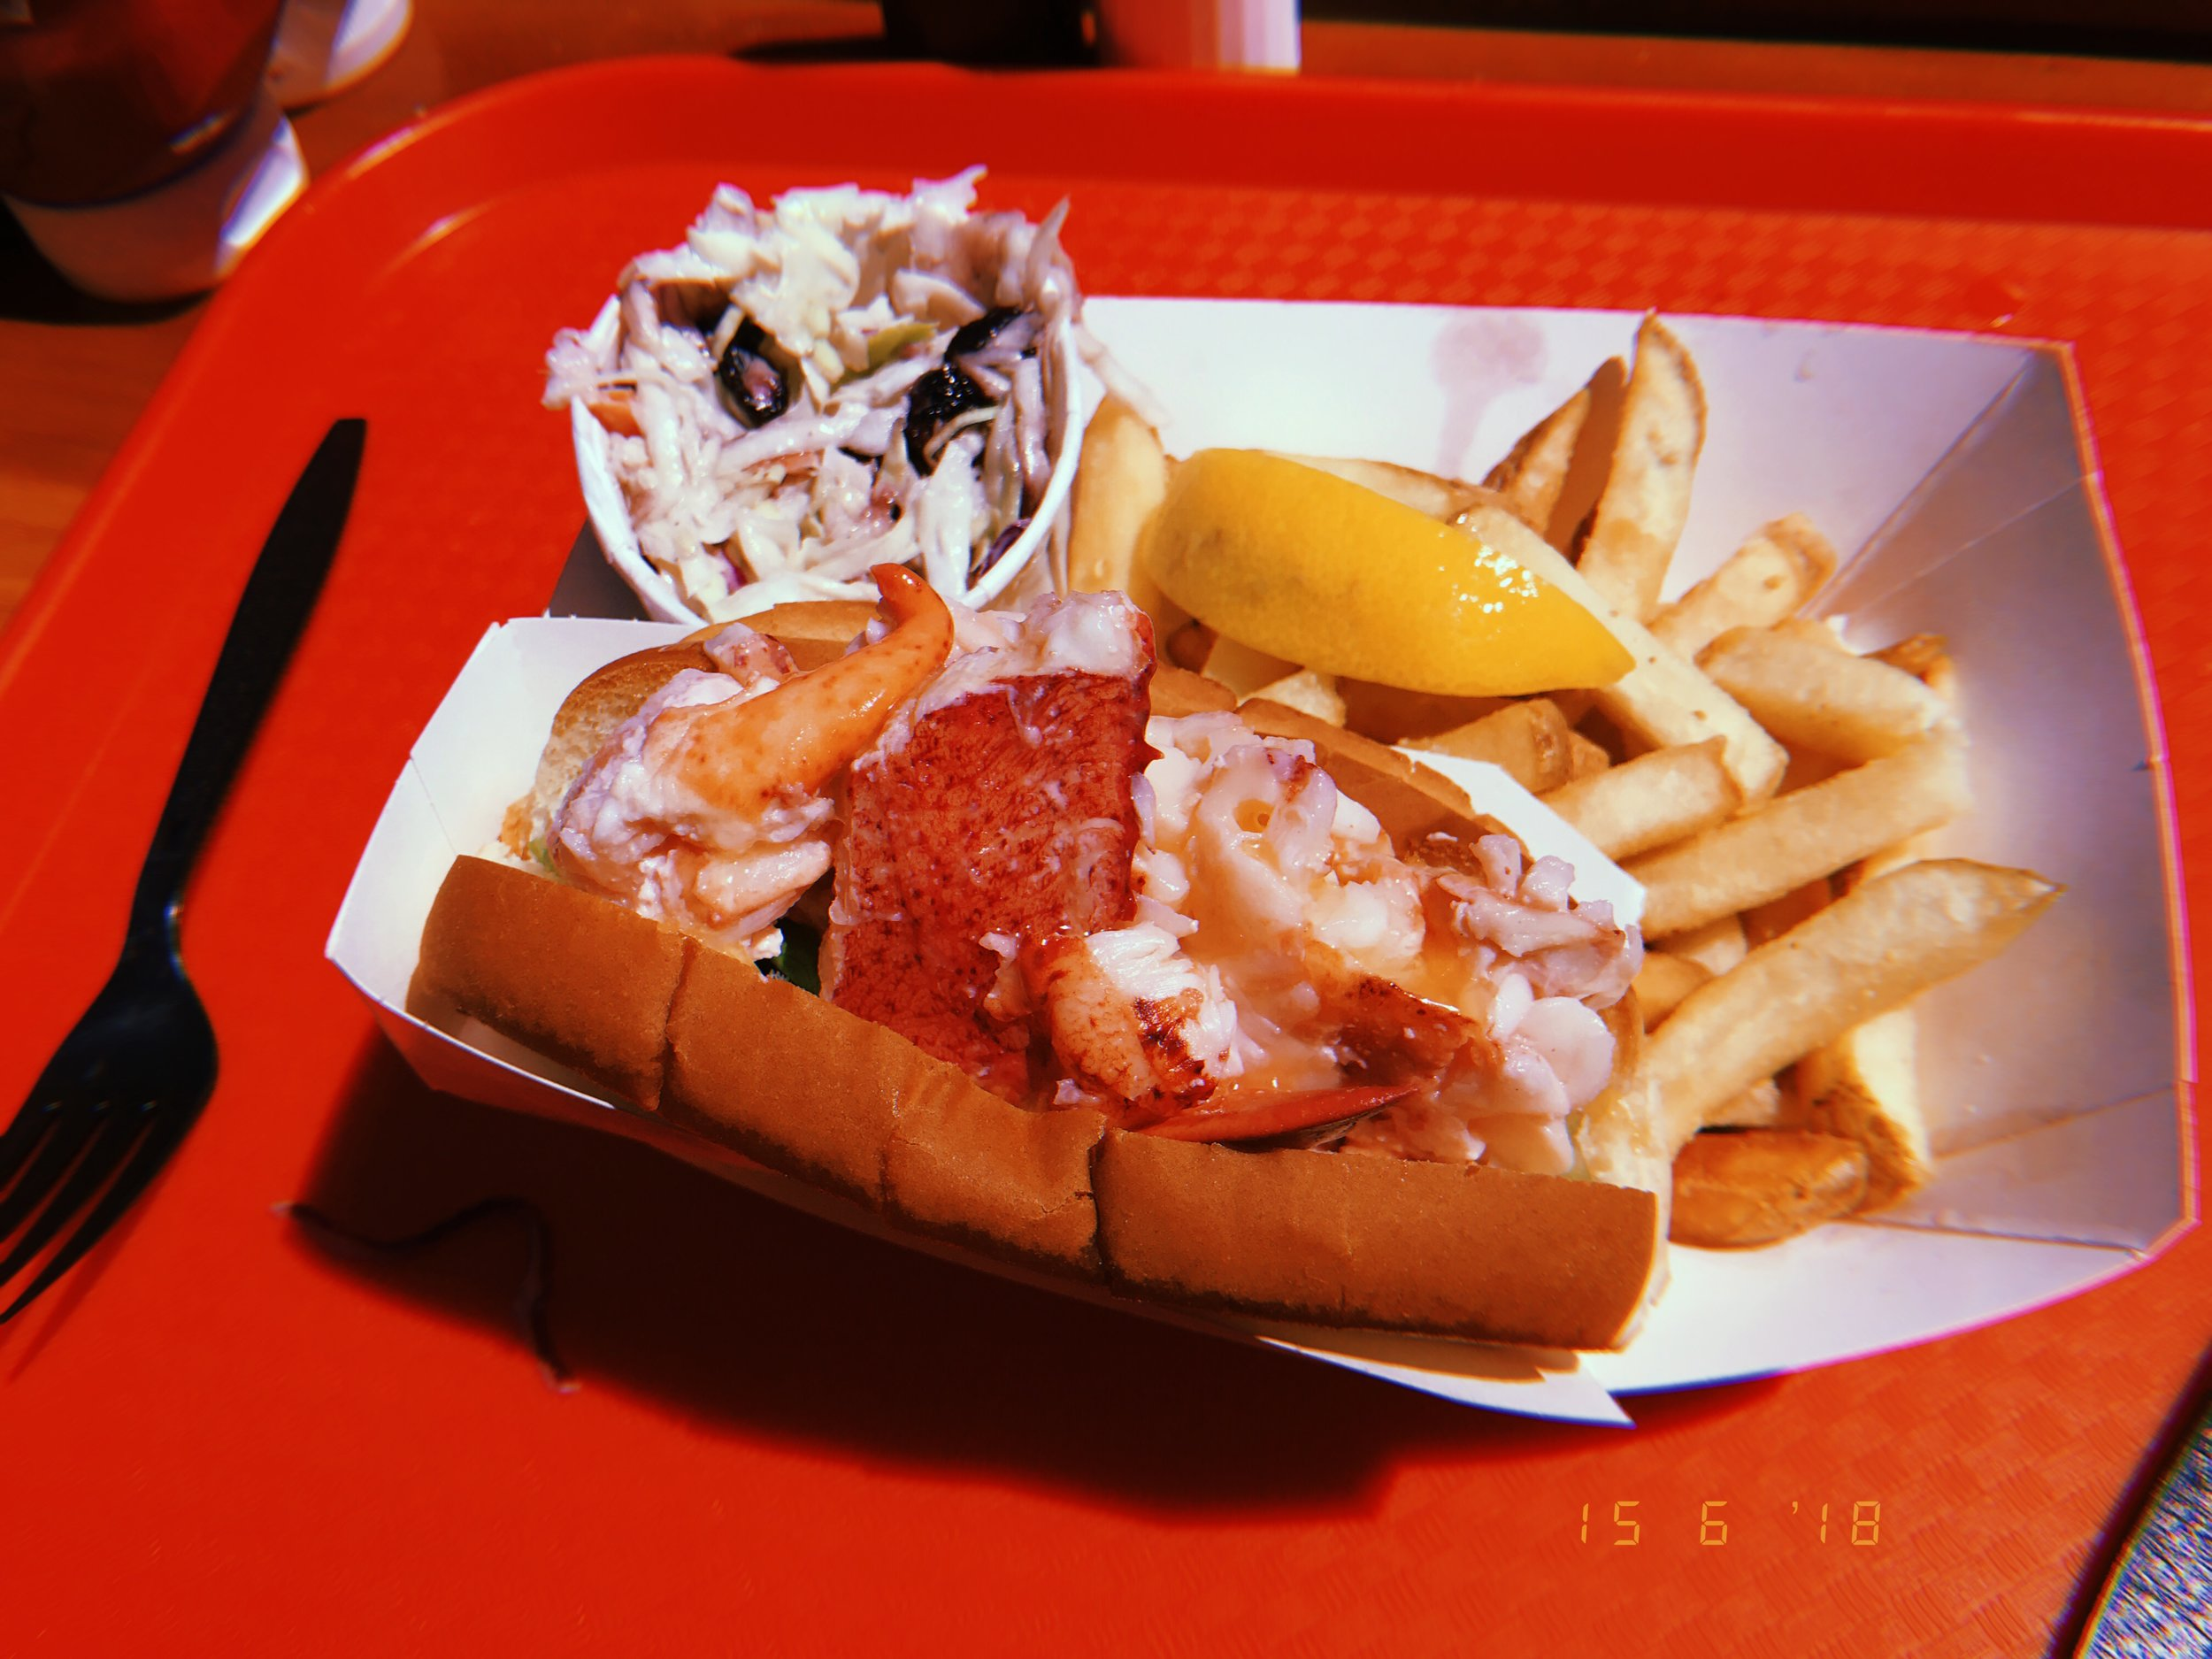 Arguably New England's most famous food: The Lobster Roll! A toasted bun with a light spreading of butter and mayo topped off with the juiciest cold lobster meat. Heavenly!